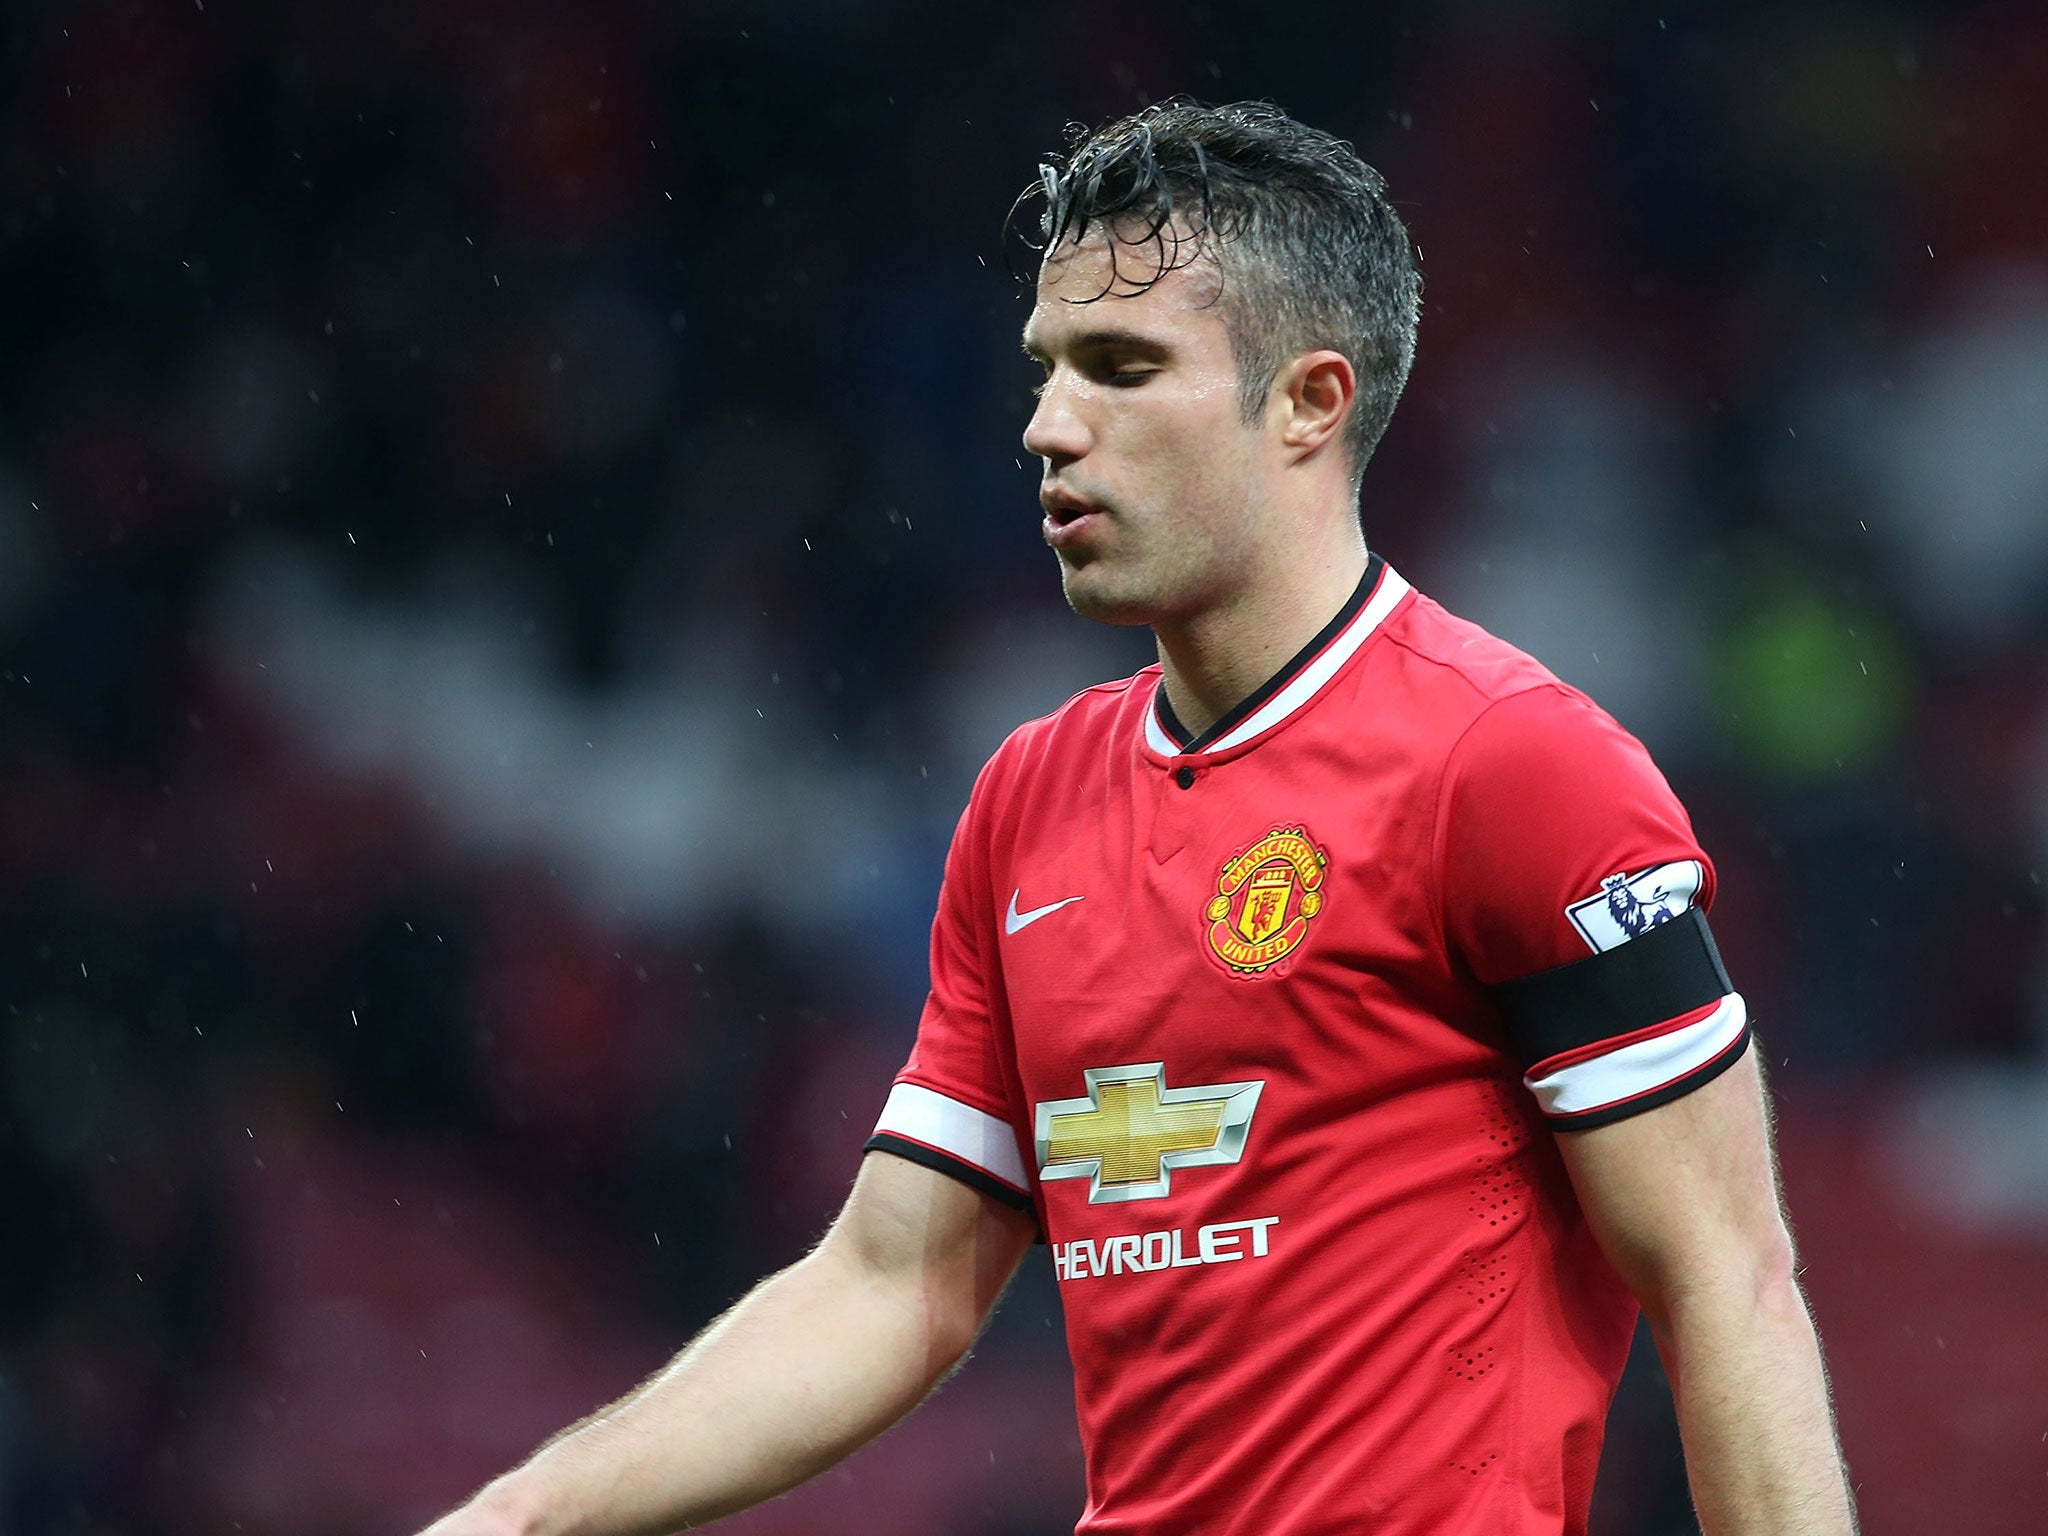 Robin van persie to fenerbahce manchester united striker agrees robin van persie to fenerbahce manchester united striker agrees to personal terms with turkish side the independent fandeluxe Document